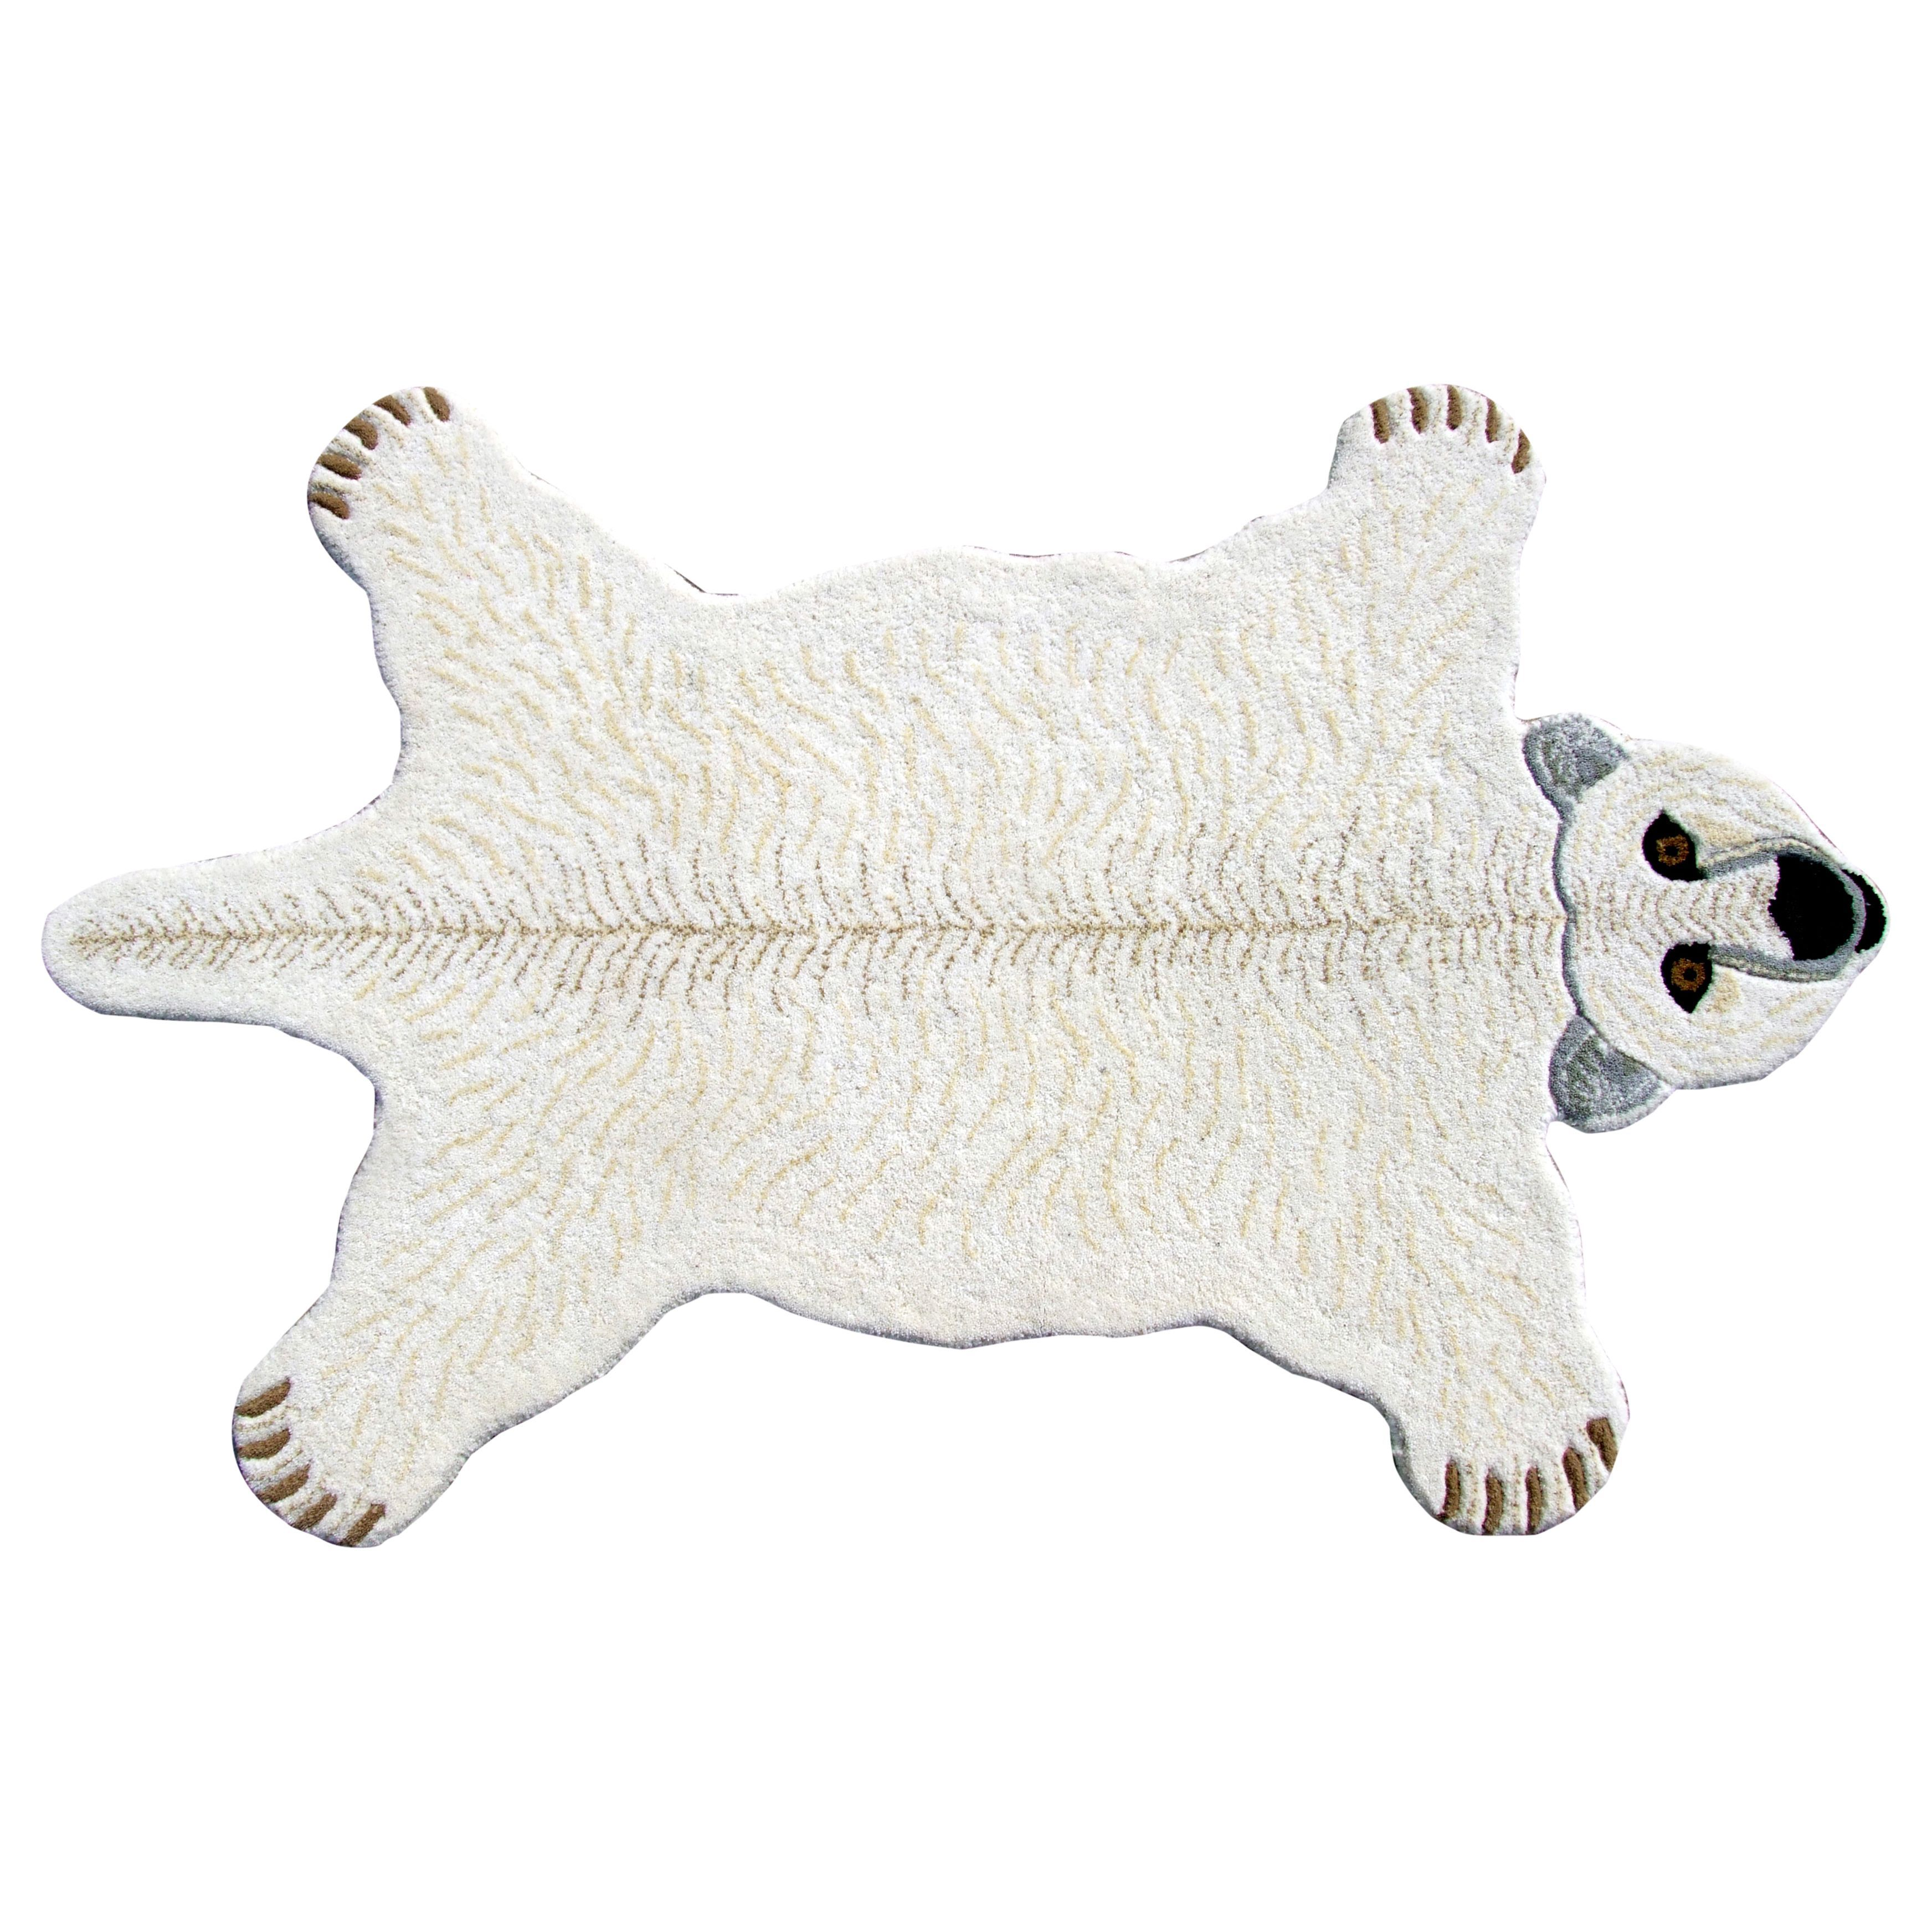 Get The Look And Feel Of A Polar Bear Skin Rug In Your Home Without Trouble Hunting One This Hand Tufted Shaped Is Made Quality